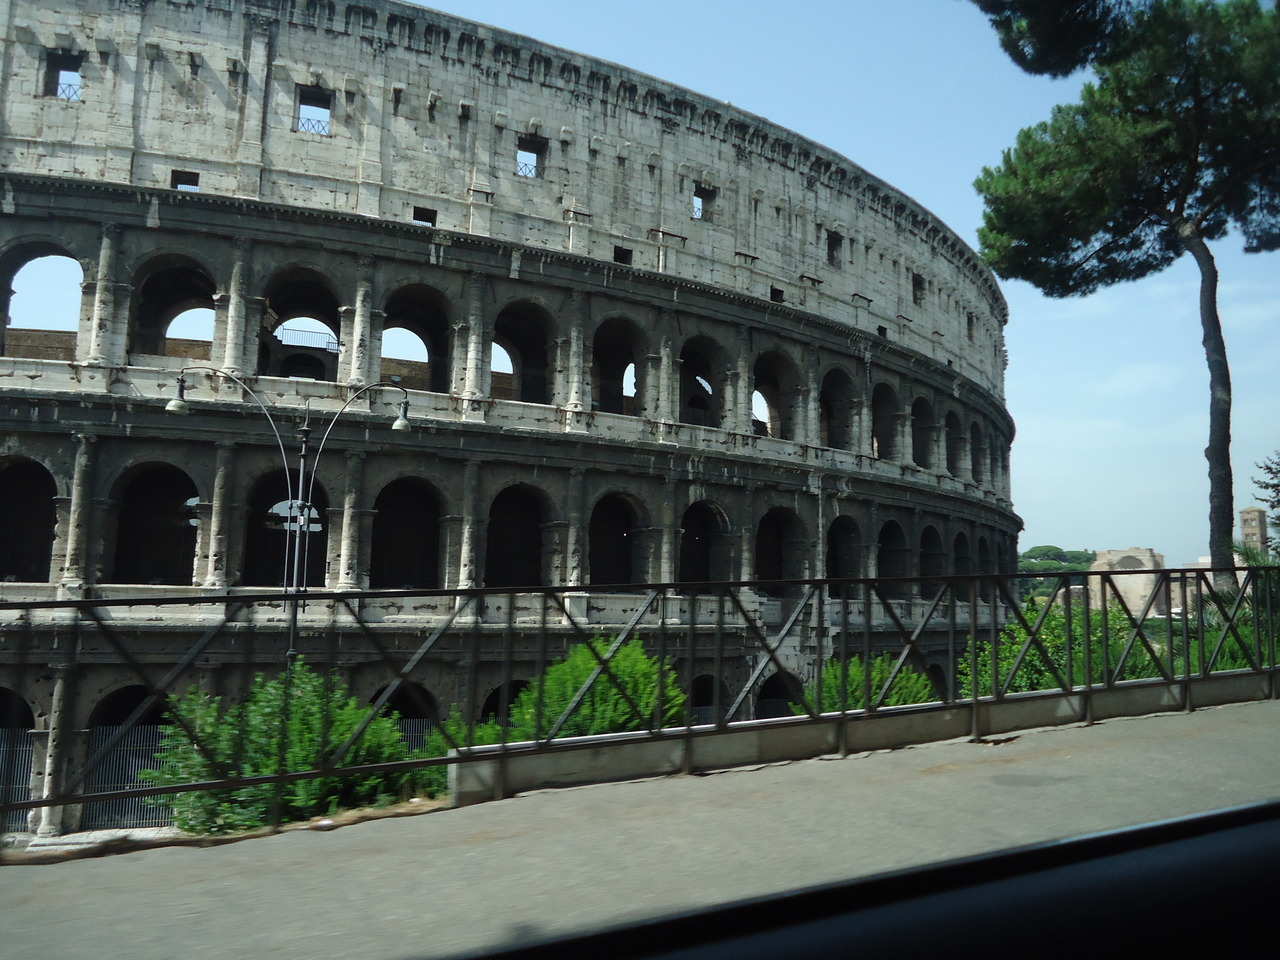 Rome was amazing. I had the time of my life exploring the Colosseum, the Pantheon, the Forum and Palentine Hill, and visiting the Vatican. Here are some pictures I took!